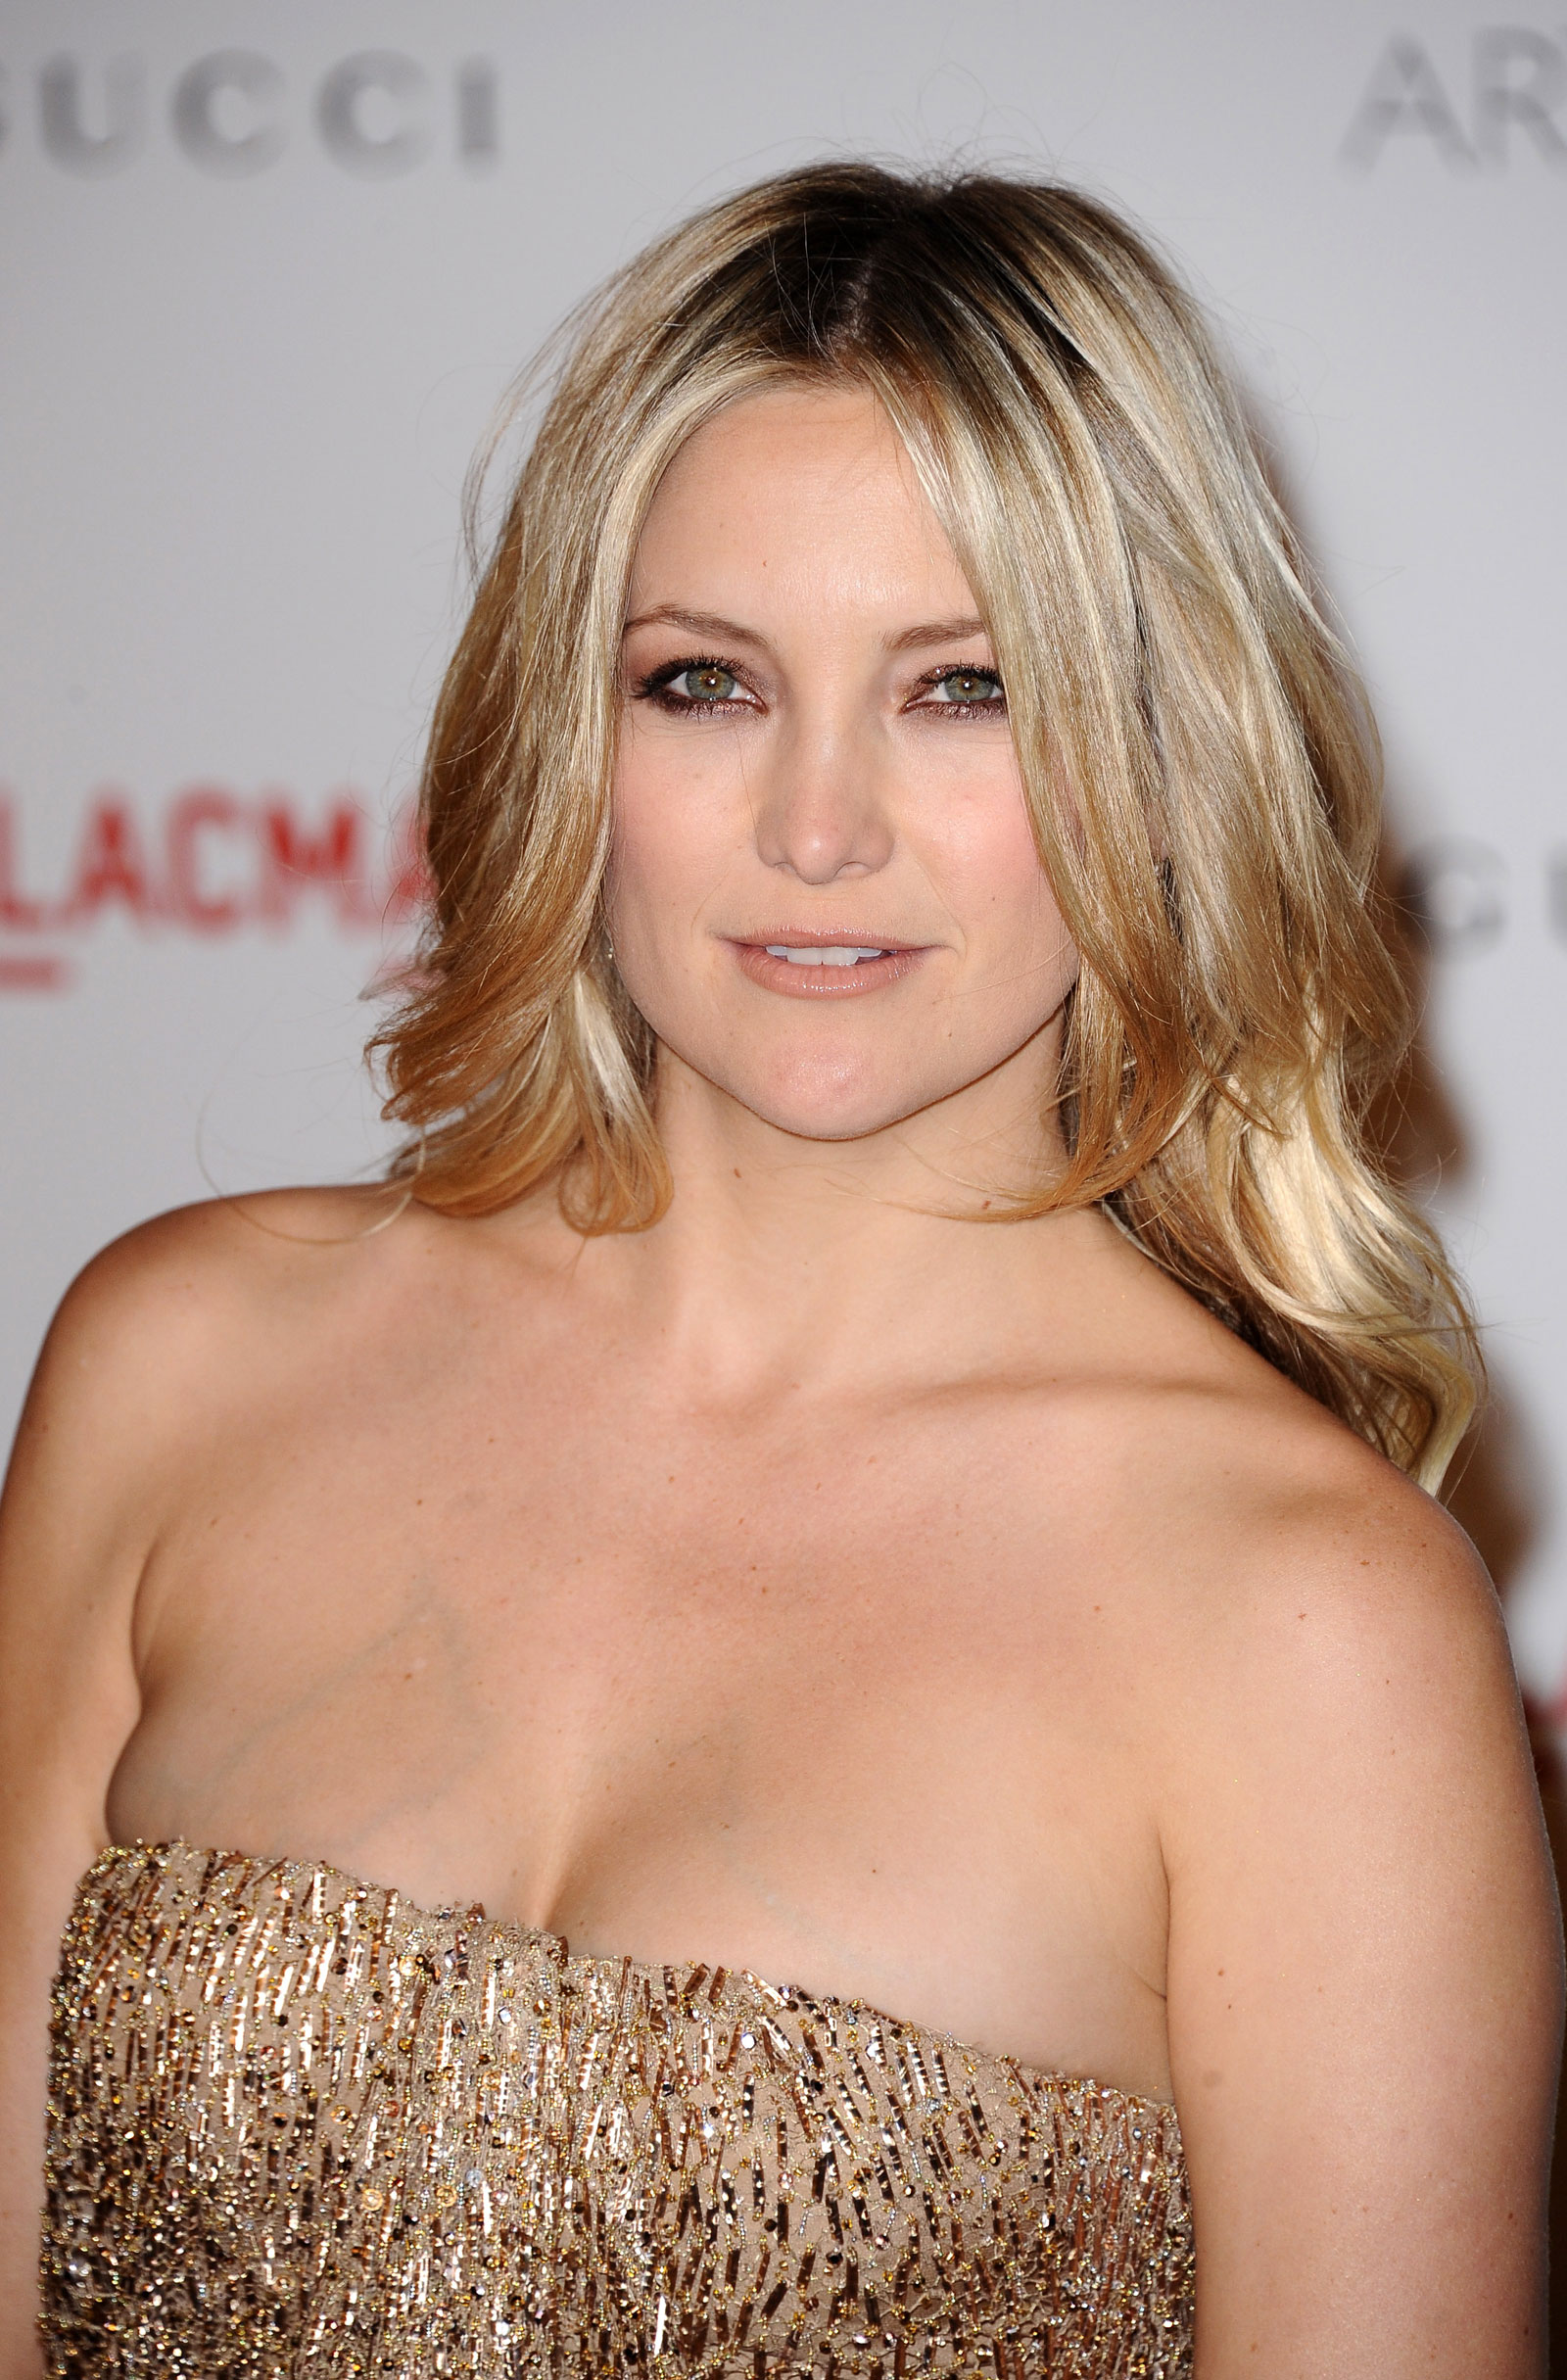 Kate Hudson at LACMA Inaugural Art and Film Gala in Los Angeles